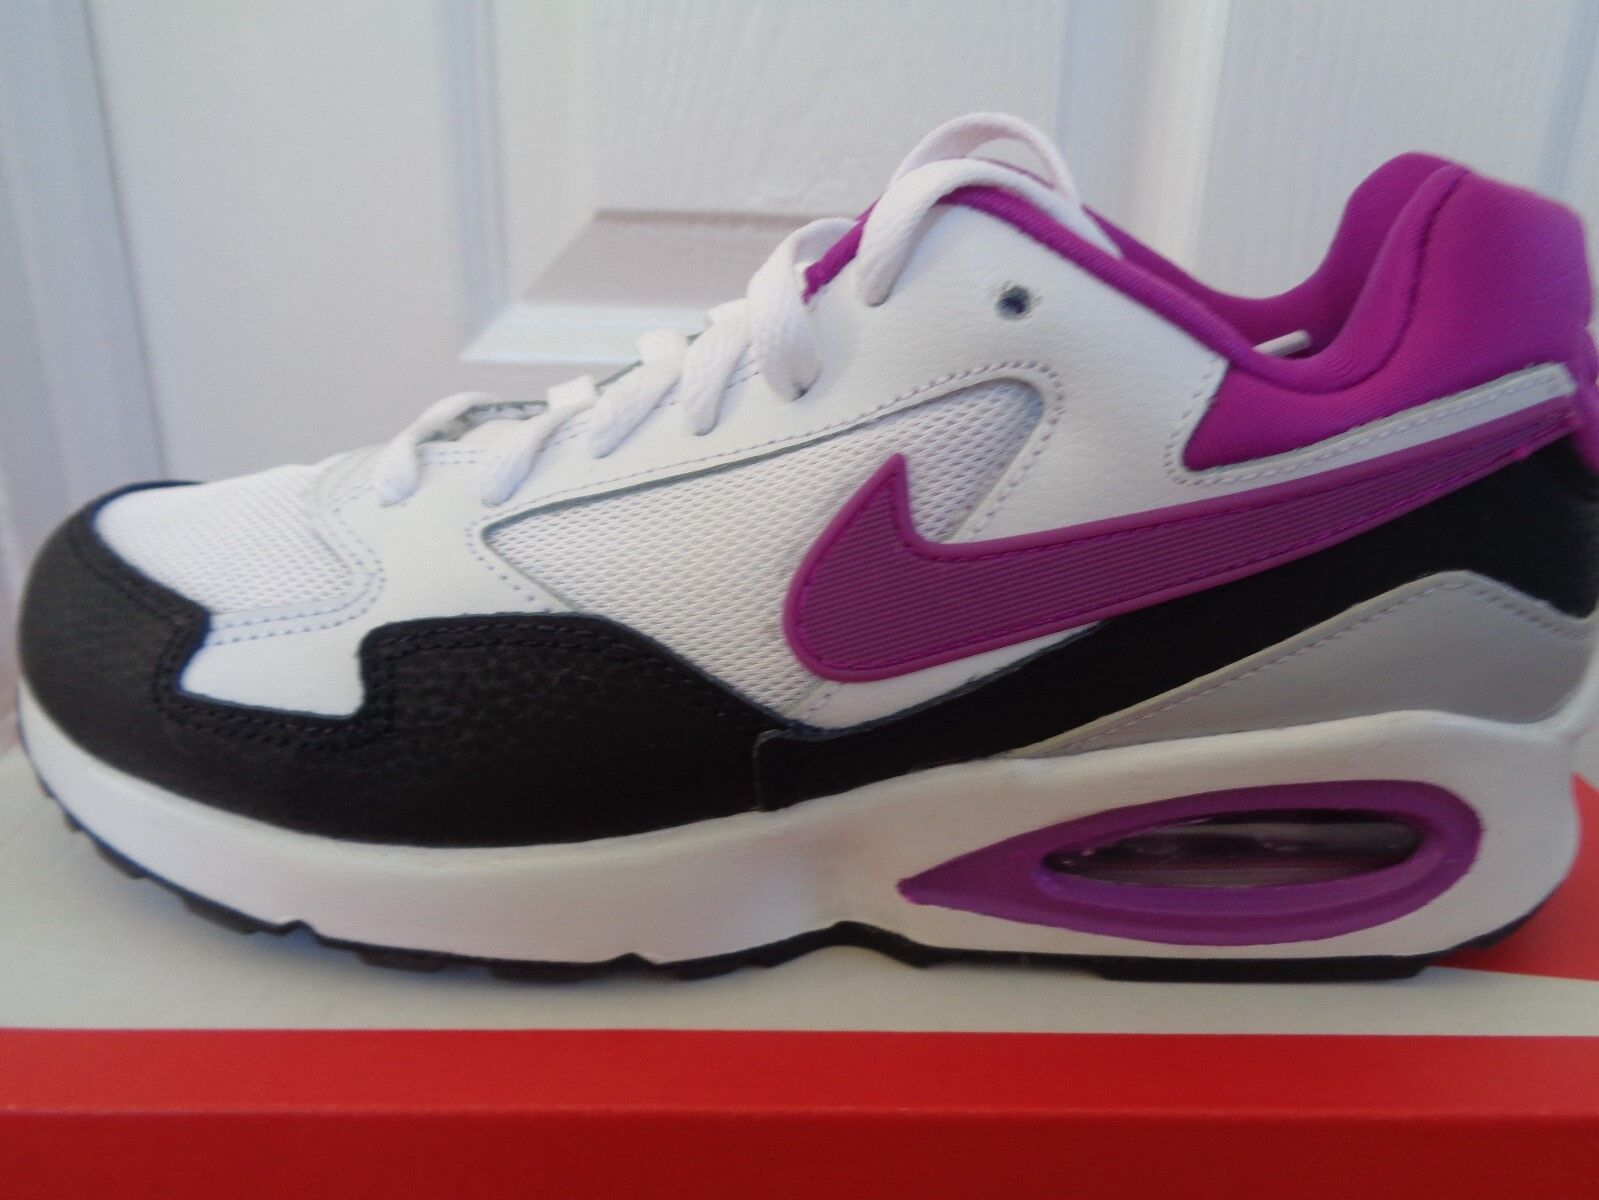 Nike Air max ST  Femme  trainers  chaussures  705003 104 uk 4.5 eu 38 us 6 NEW+BOX